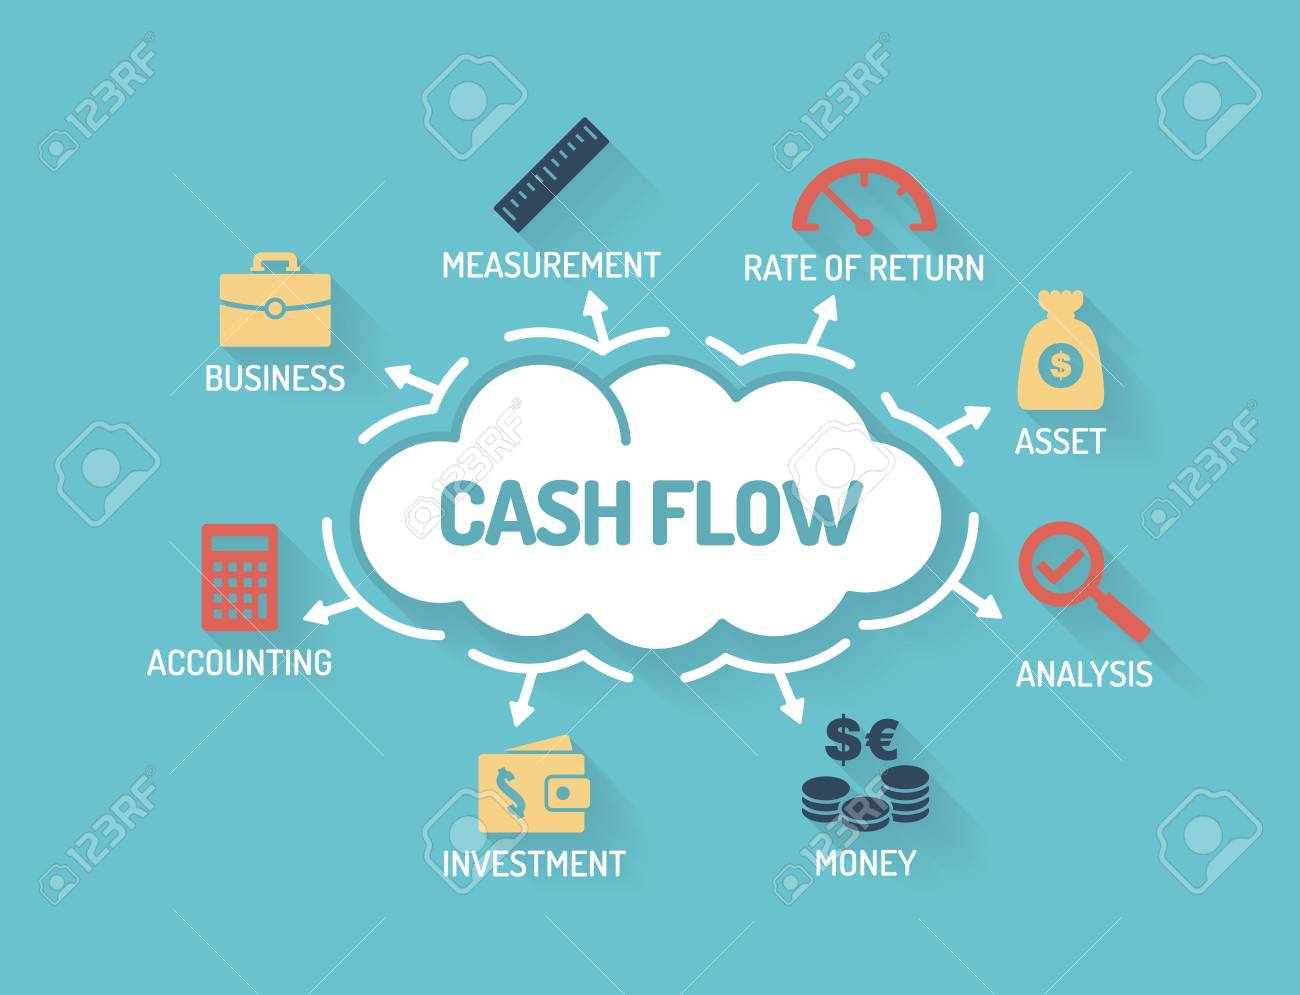 cash flow chart with keywords and icons flat design royalty free